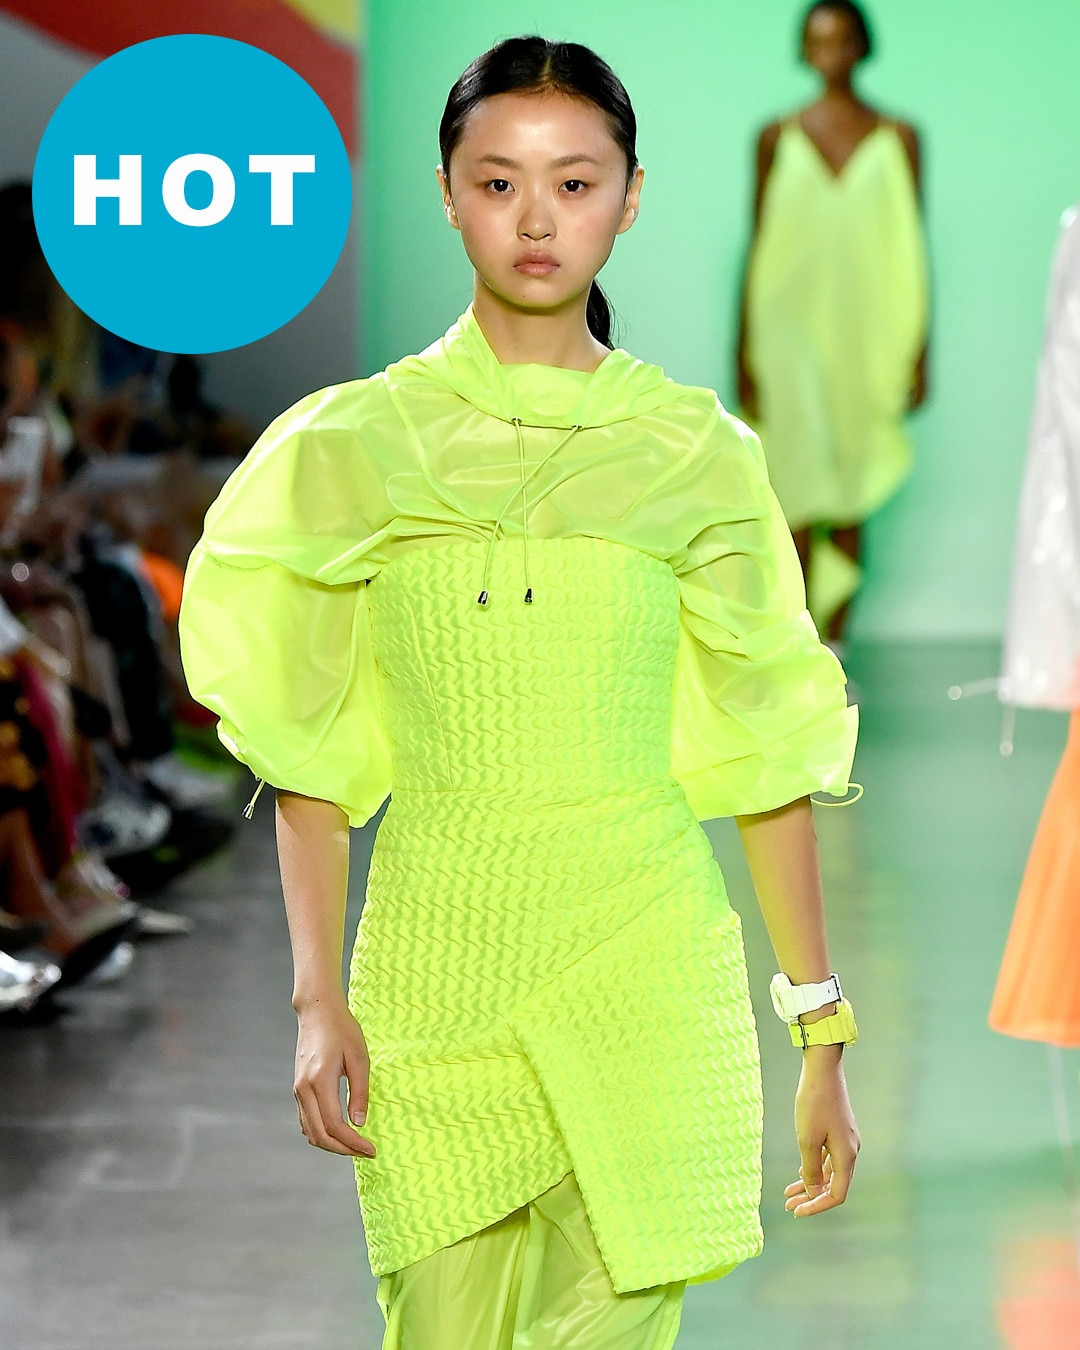 Trend: Neon Colors from Paris Hilton Decides Whether the Most